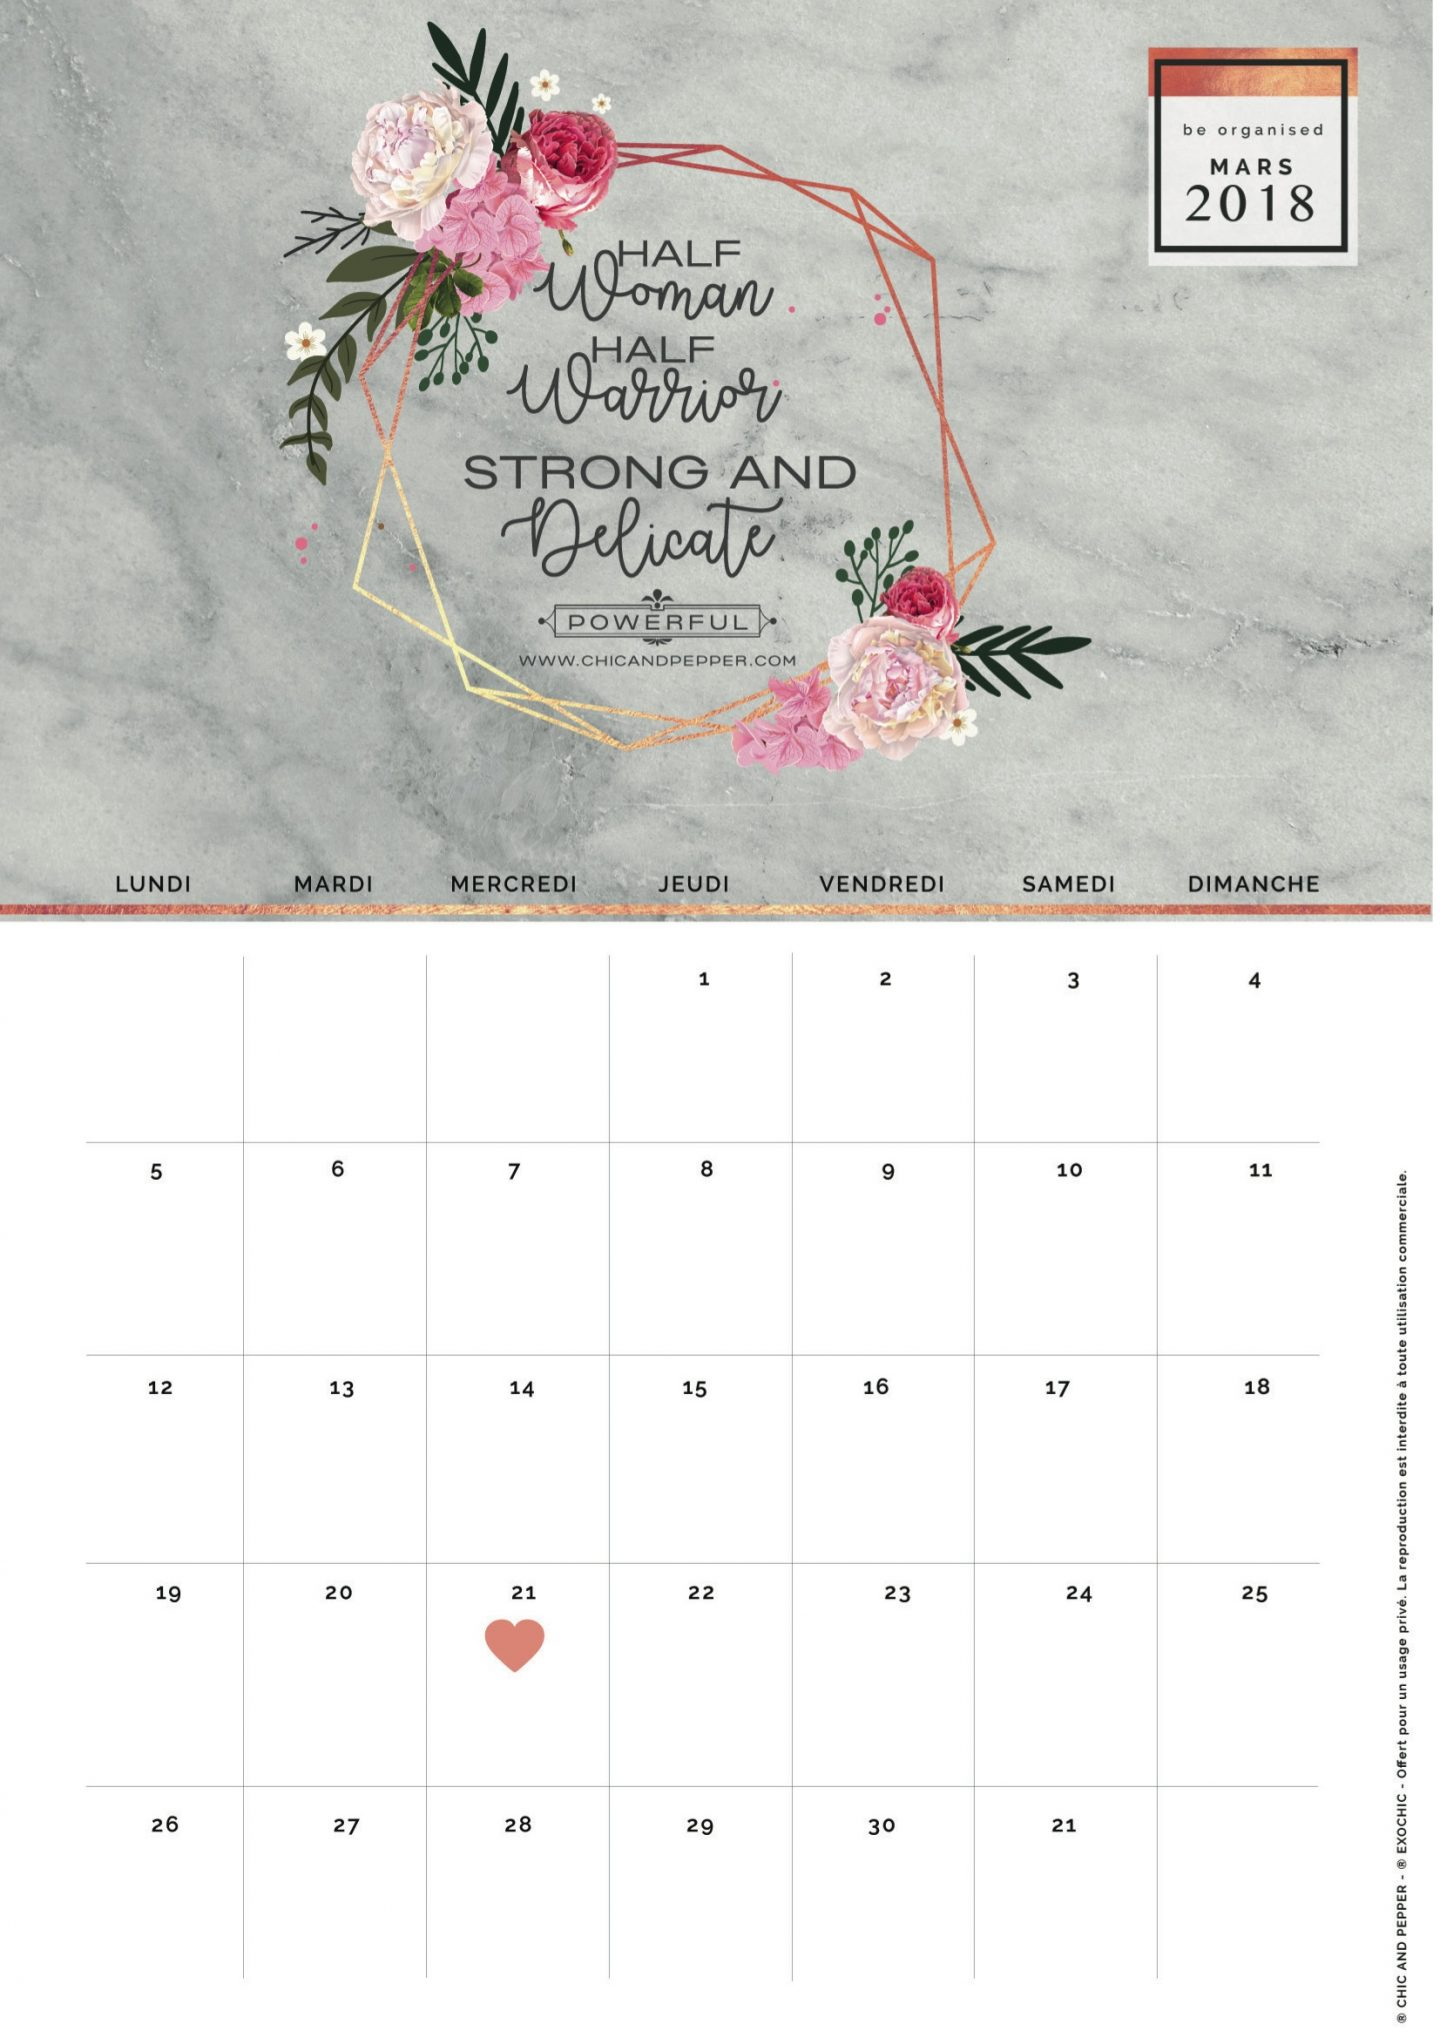 Air Chic Design:disque externe:EXOChic:1 -POSTS:1 - ARTICLES:2018:03 - MARS:01 CALENDRIER MARS:calendrier:Calendrier fond ecran Mars EXOCHIC- CHIC AND PEPPER.pdf